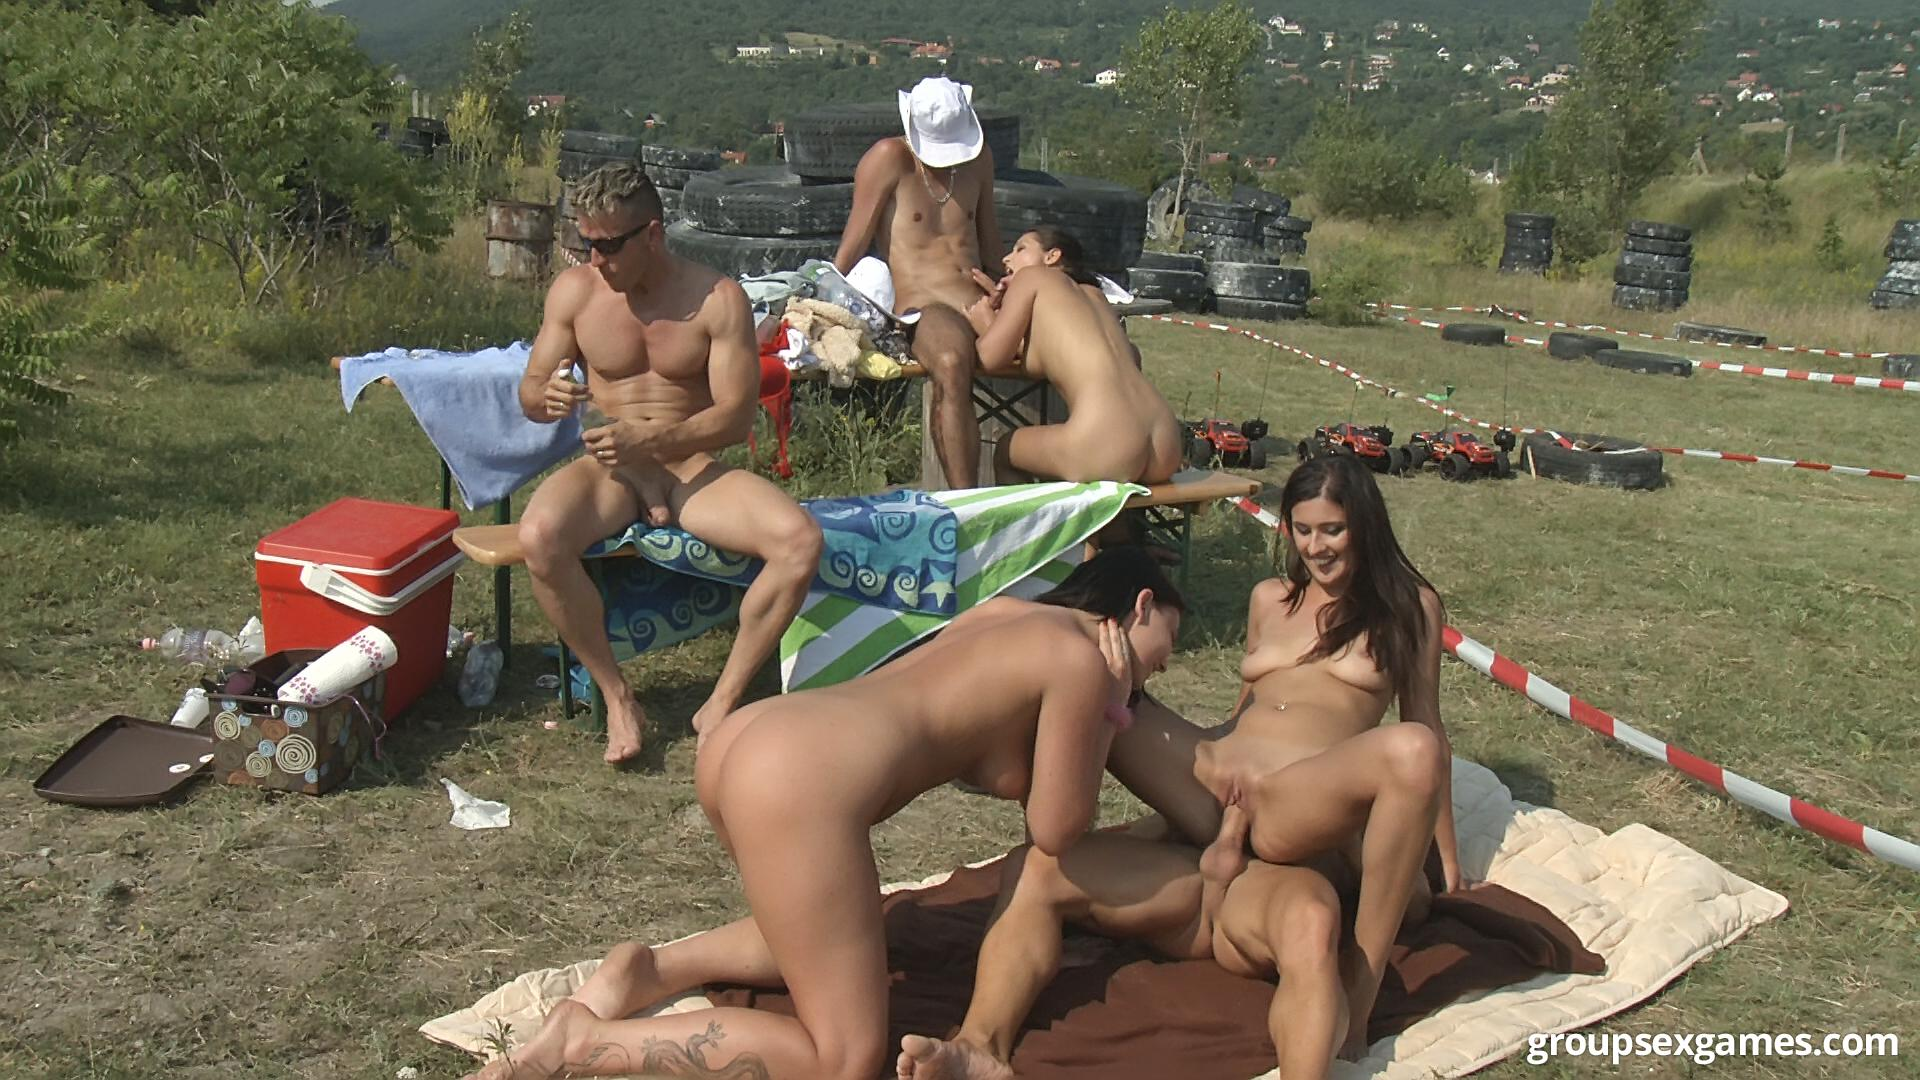 Outdoor Amateur Sex im Park PORNOHIRSCHcom